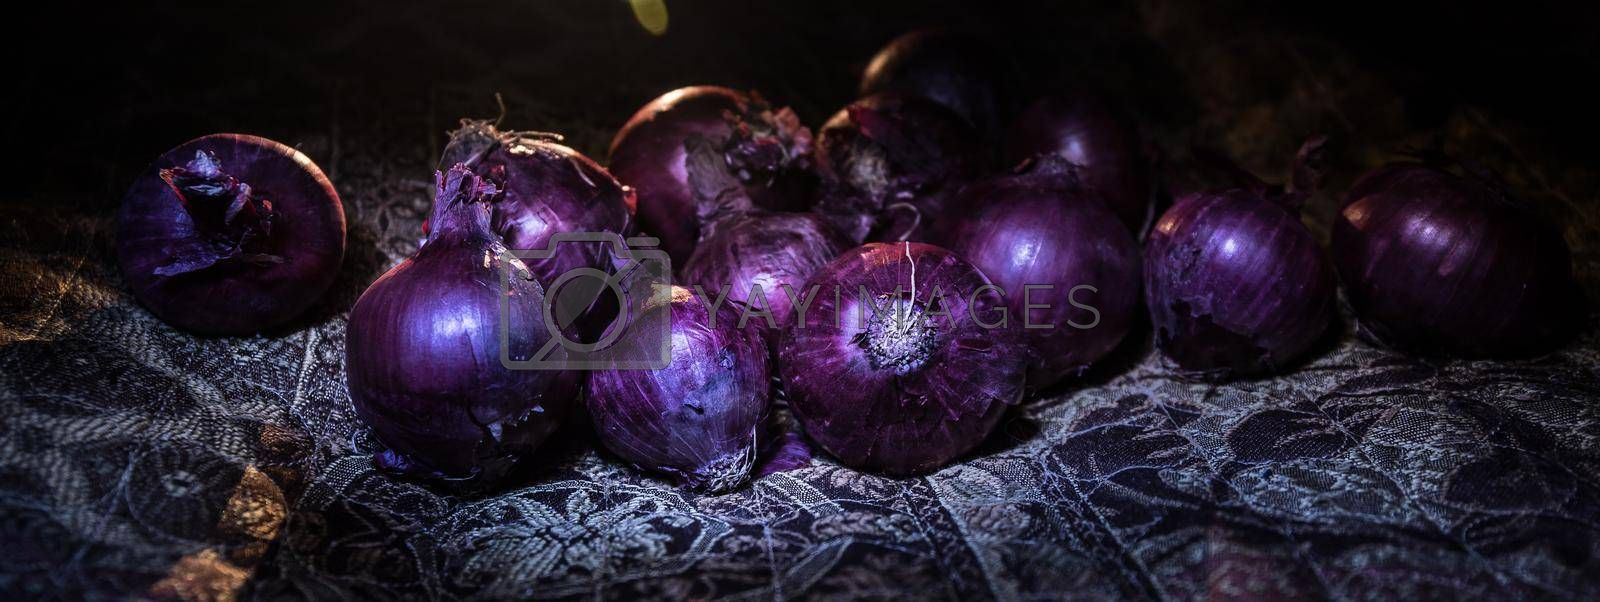 Vegetable concept. Purple onions on carpet surface in dark. Selective focus. Colorful background.